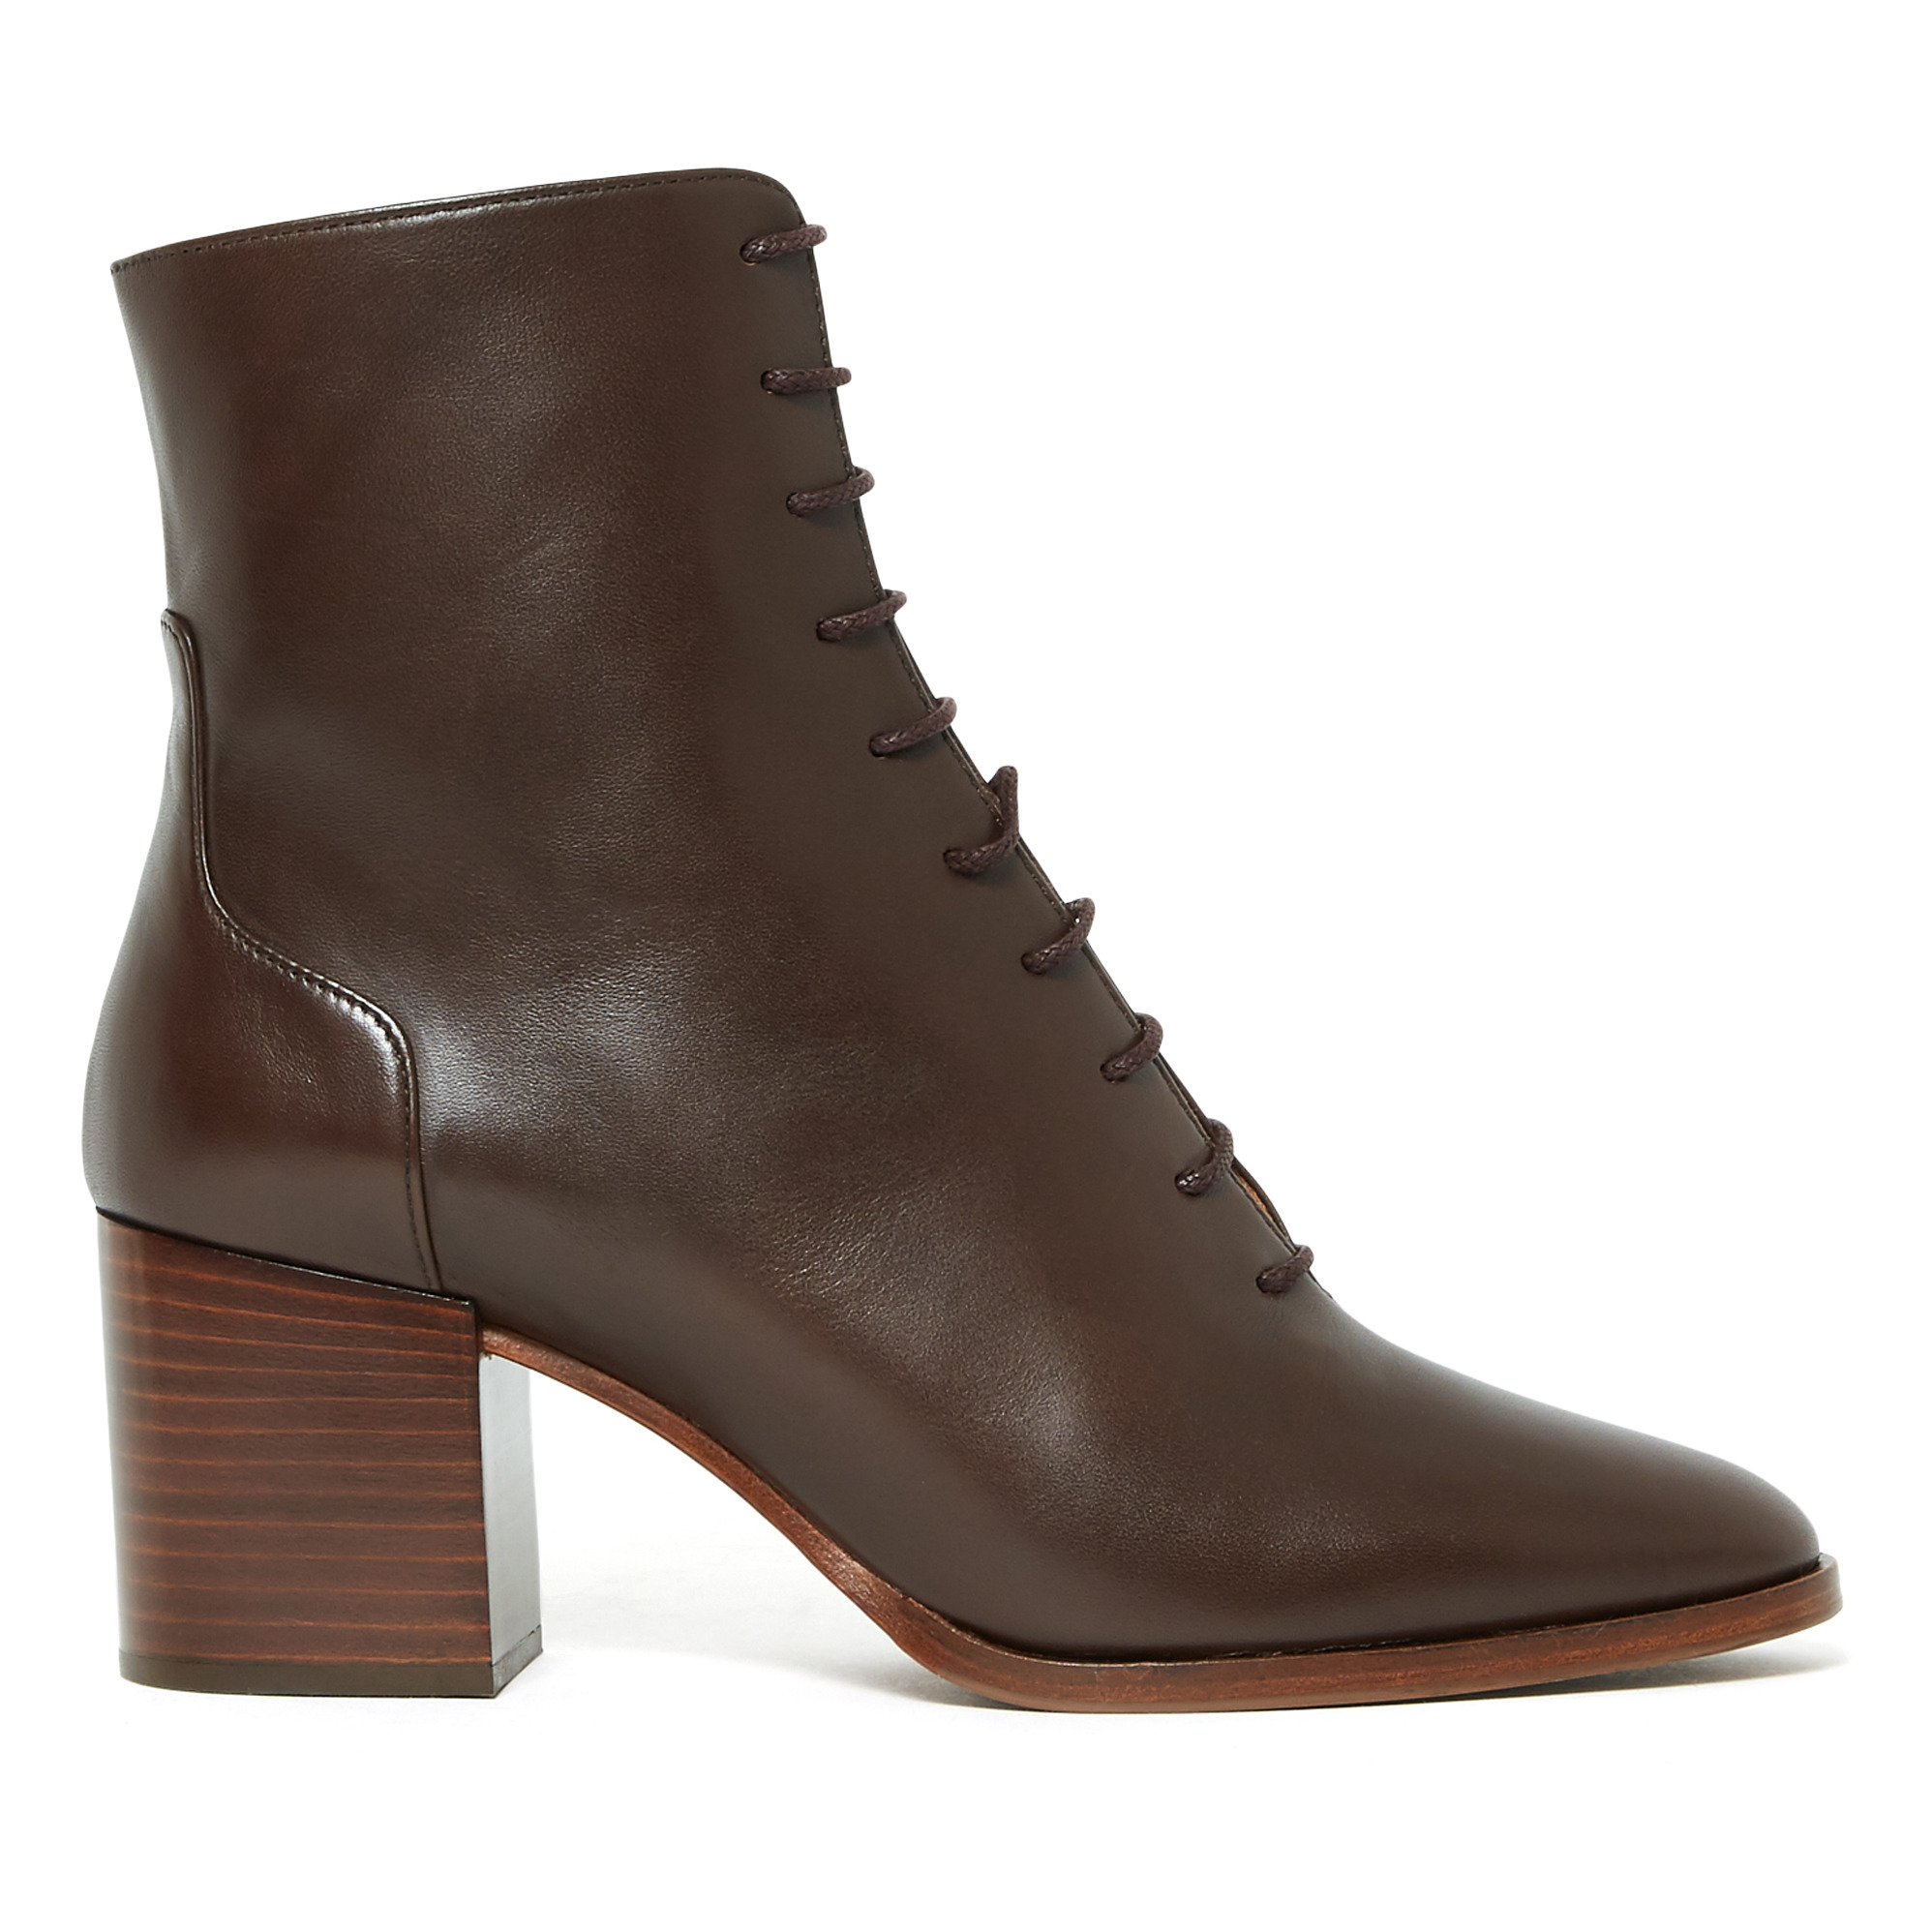 Nâ° 662 Leather Ankle Boots